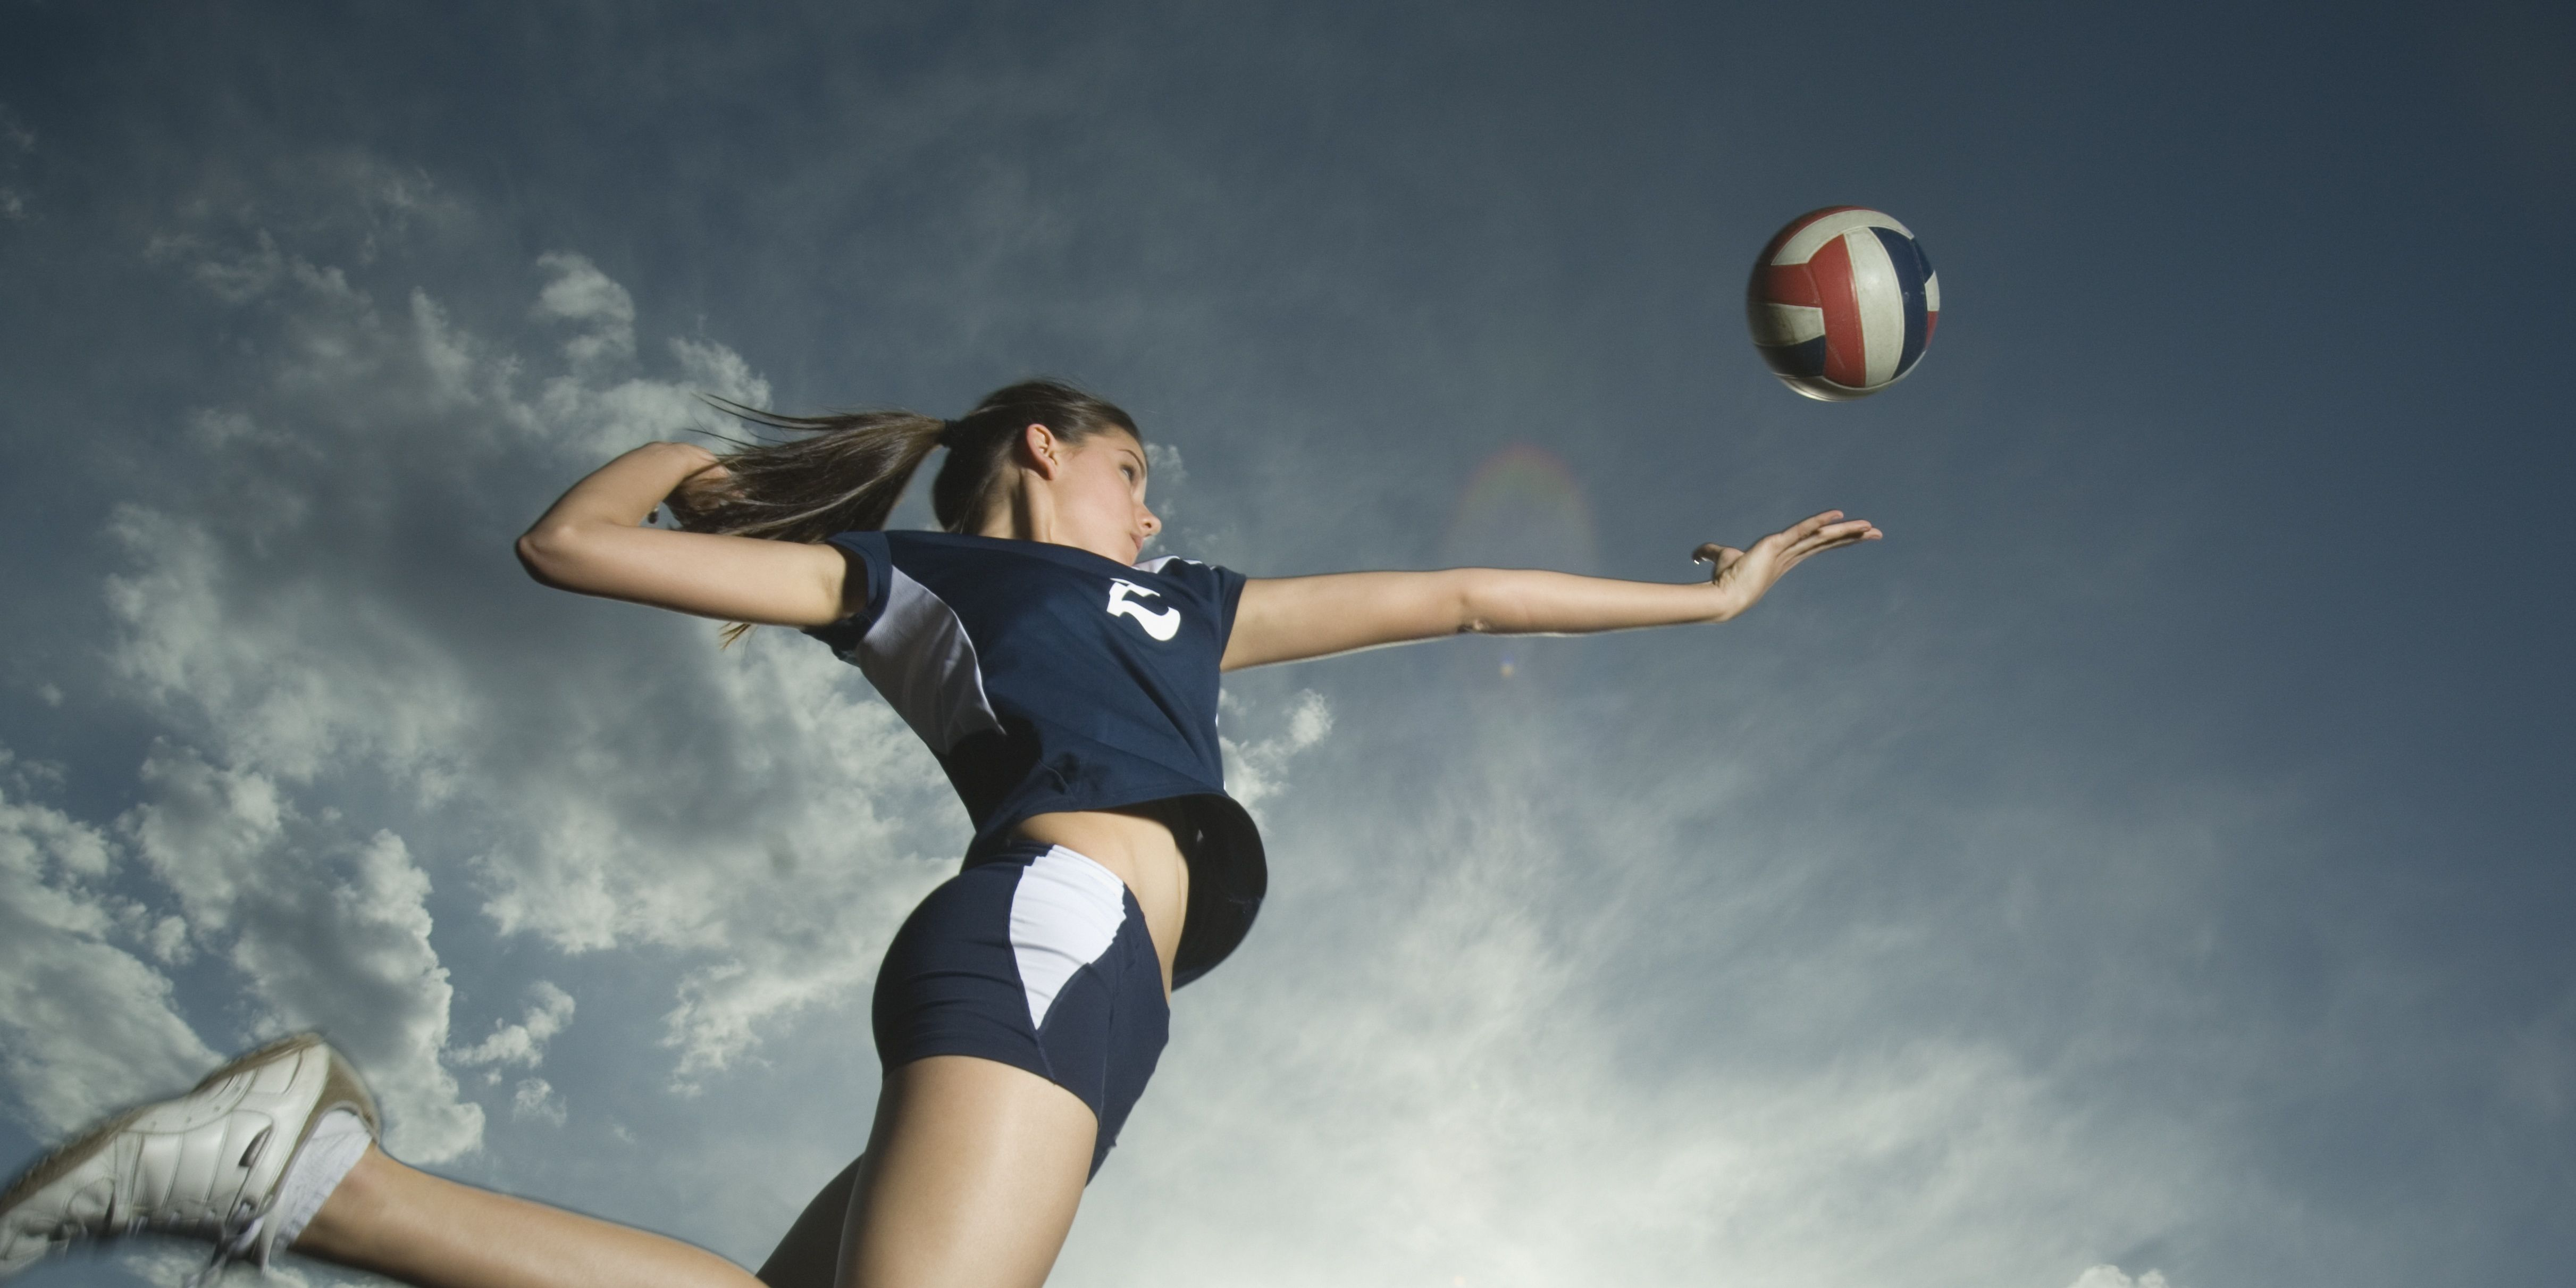 Low angle view of volleyball player jumping